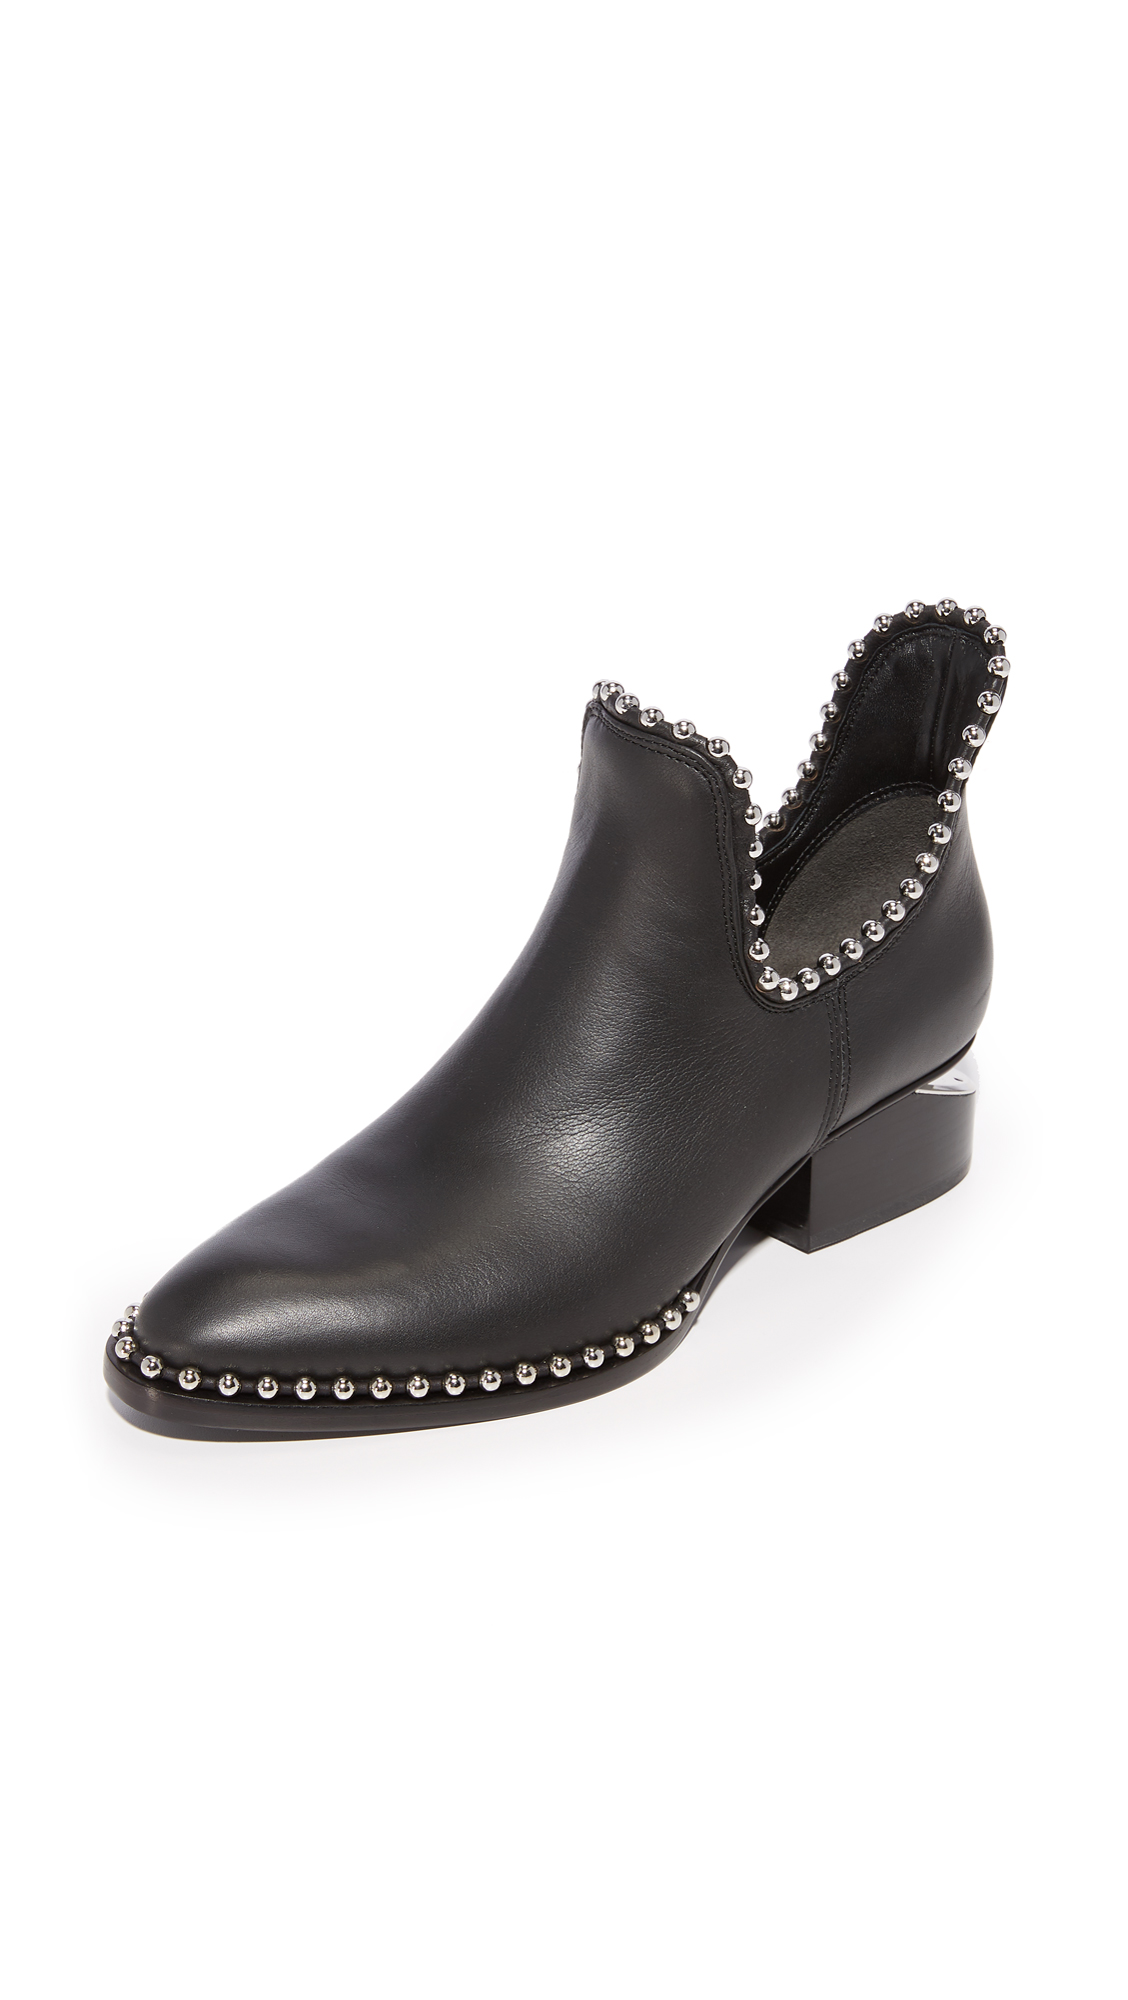 Alexander Wang Kori Cutout Ankle Booties - Black